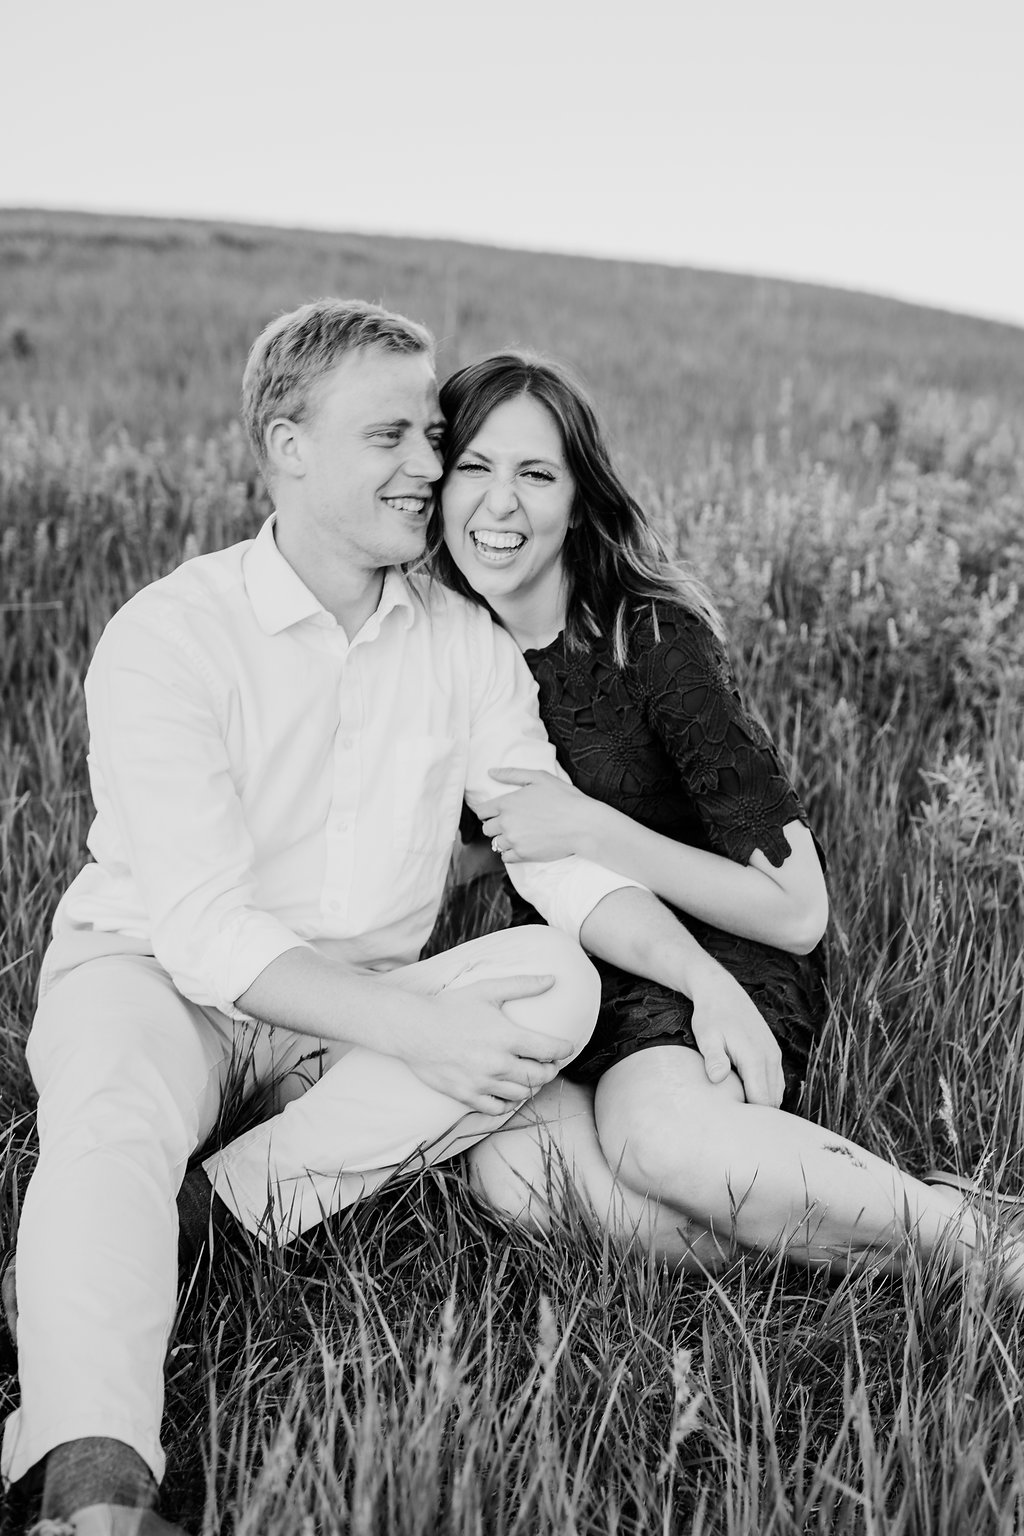 black and white professional engagement photography northern utah wedding photographer calli richards couple in field